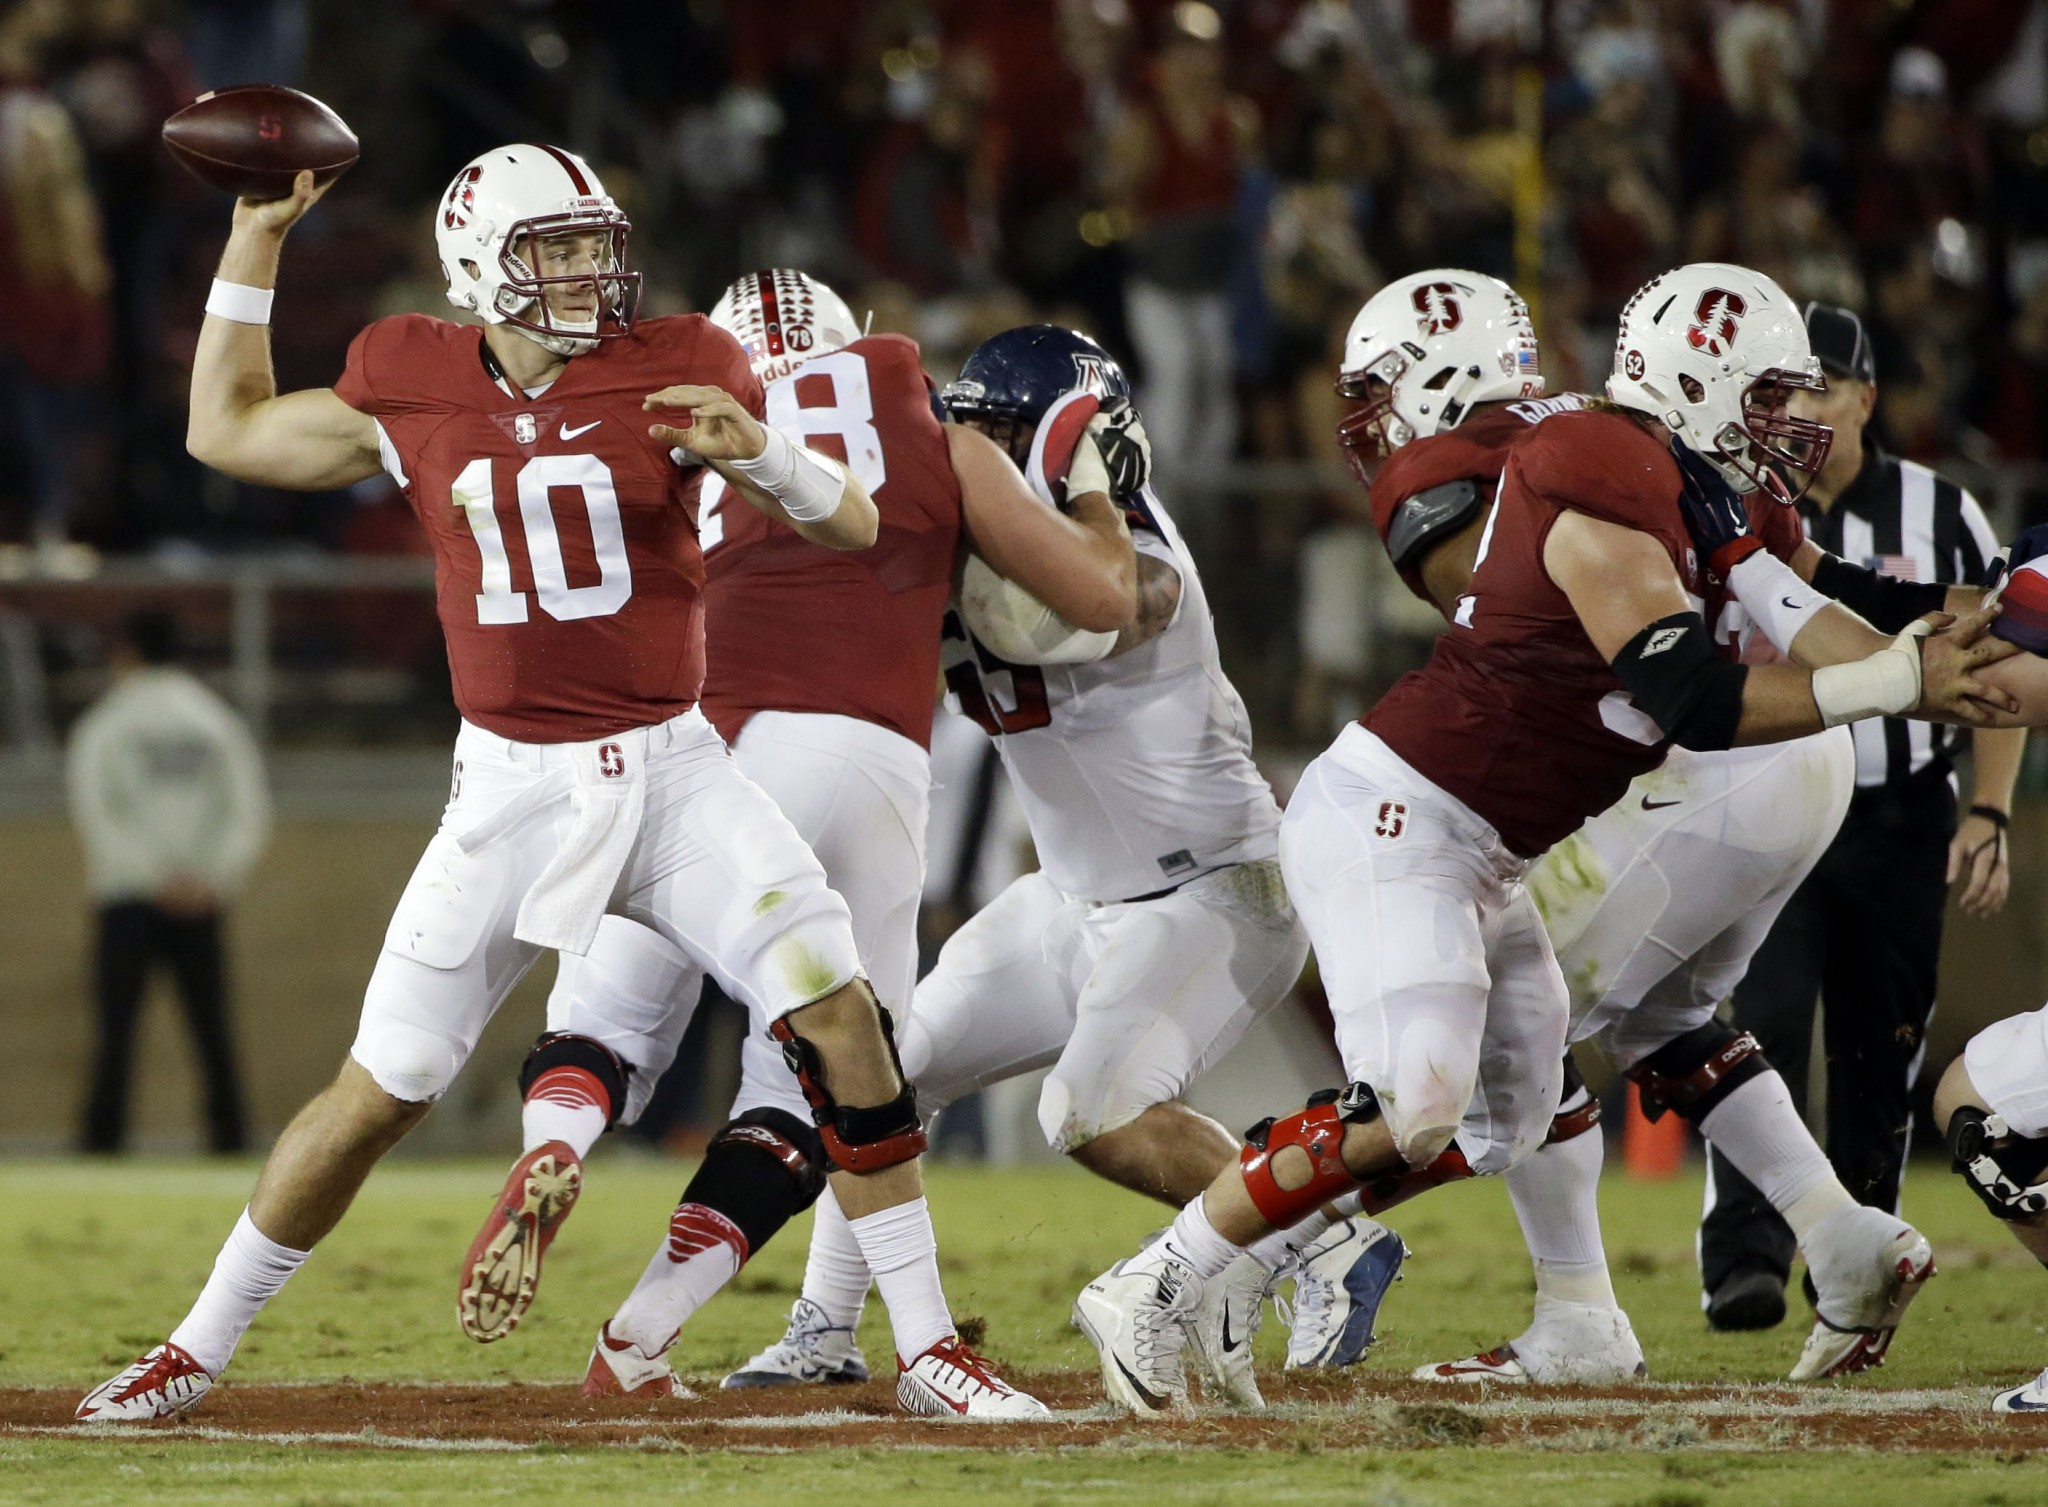 Stanford quarterback Keller Chryst (10) saw brief action behind Kevin Hogan in 2015. (AP Photo/Marcio Jose Sanchez)